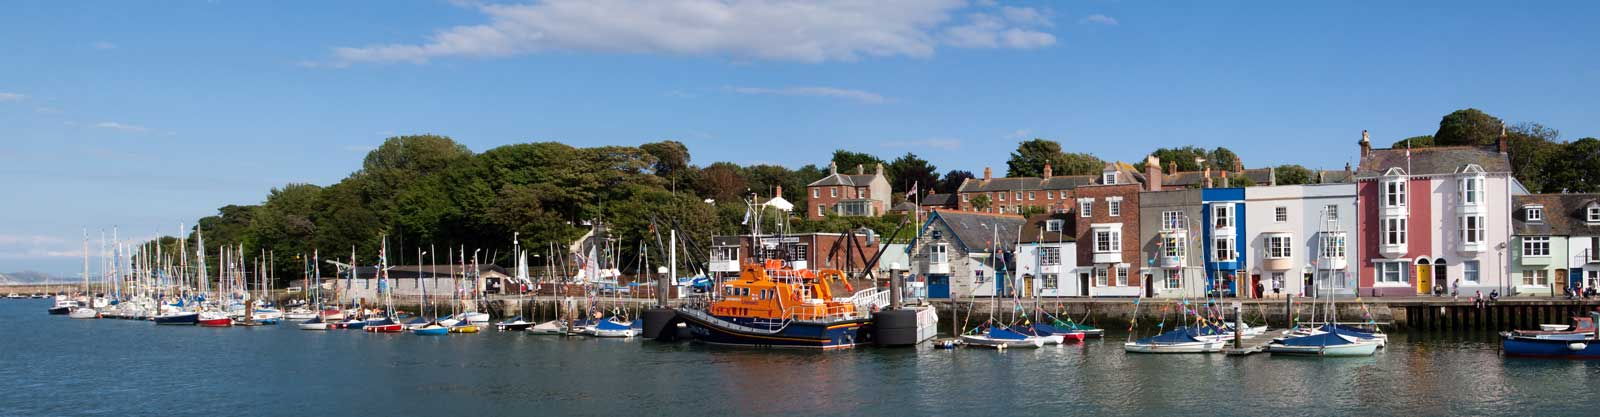 Weymouth-harbour-lifeboat.jpg